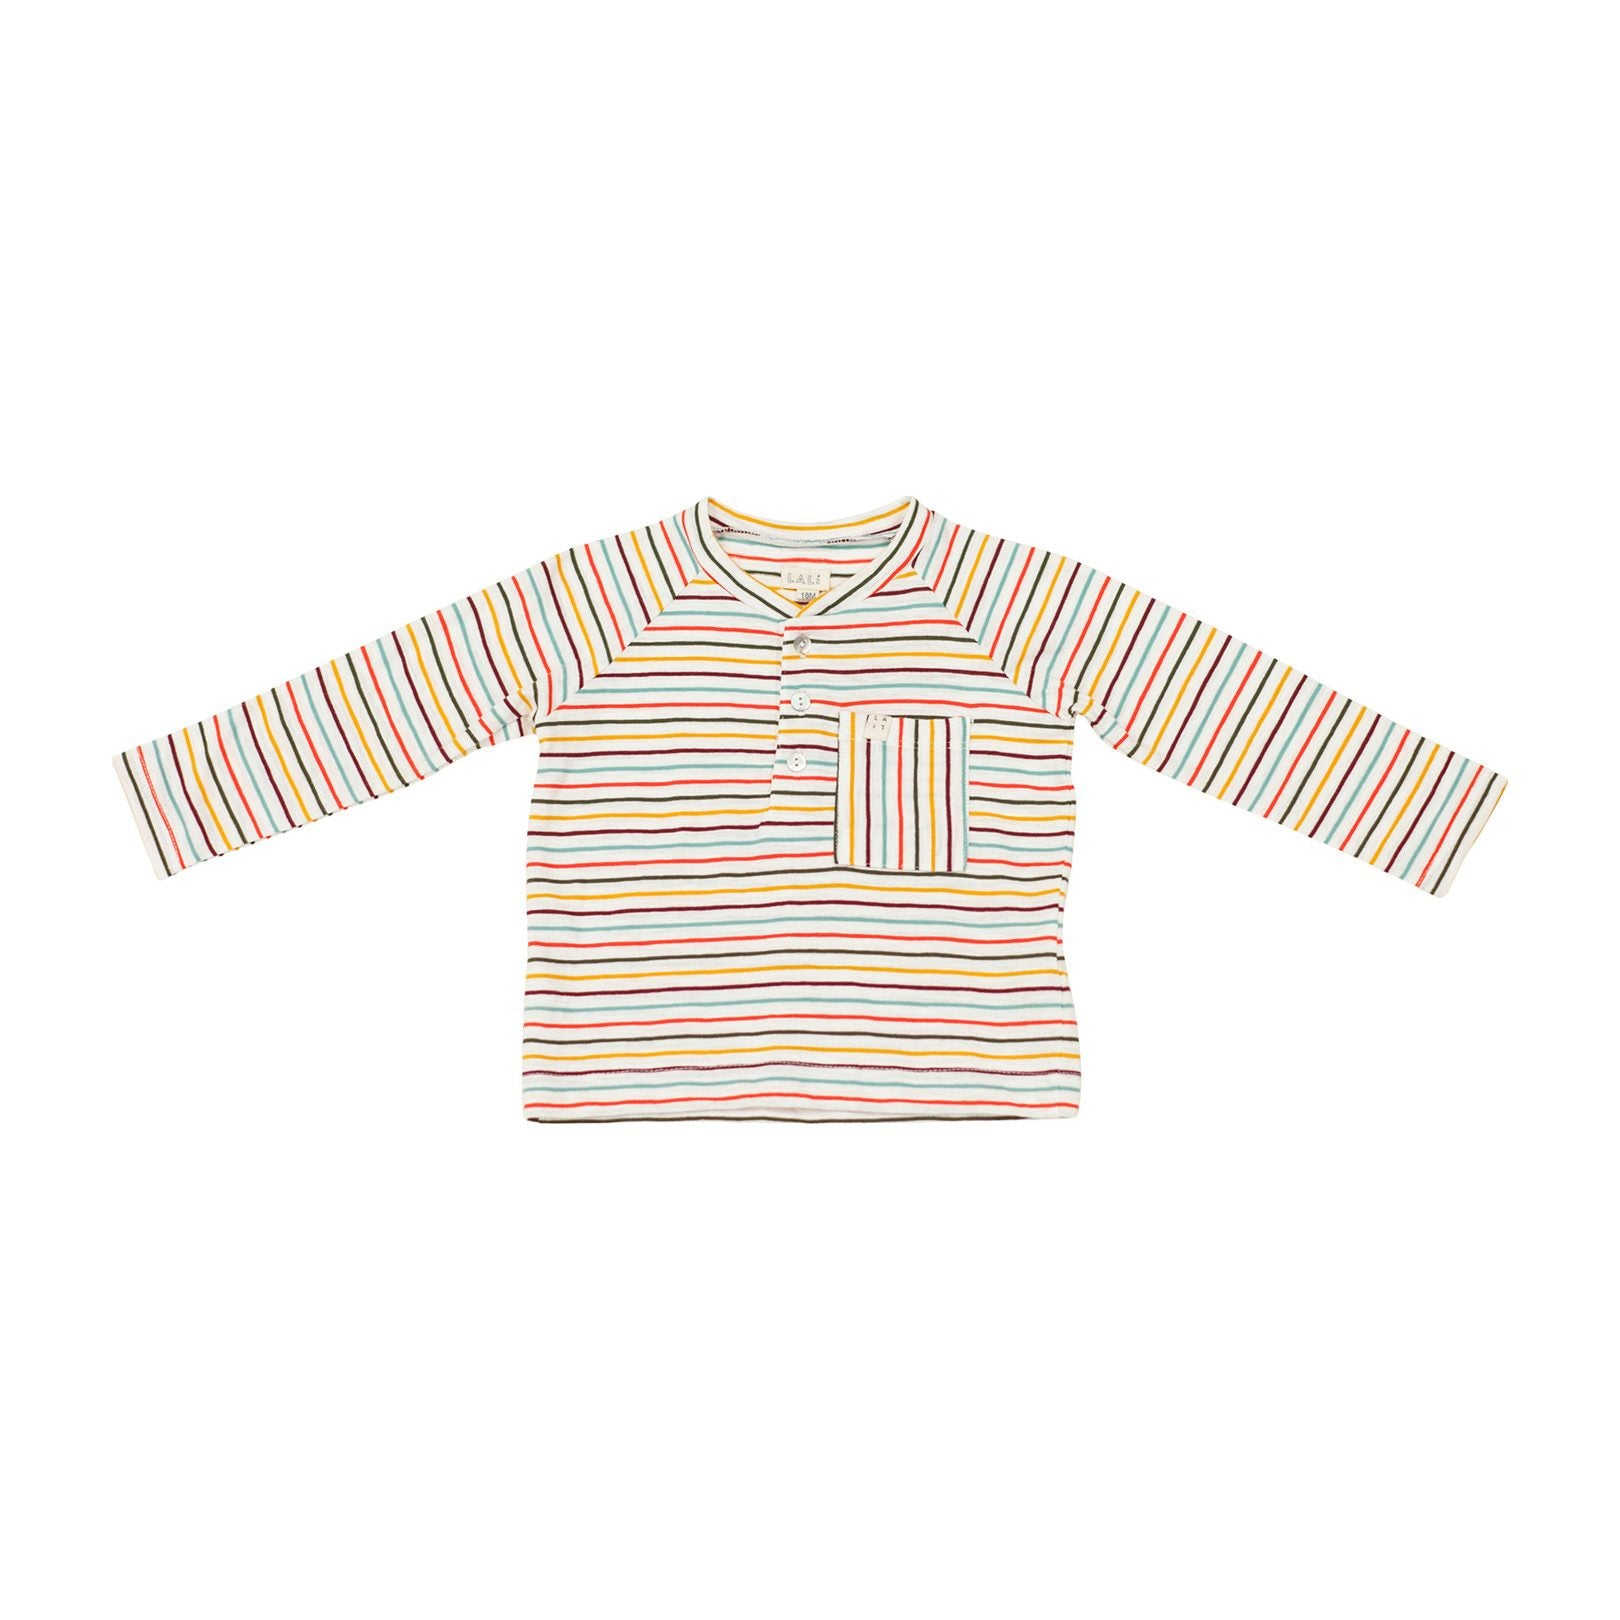 HENLEY SHIRT, RAINBOW STRIPES | SPINEL BOUTIQUE - Spinel Boutique